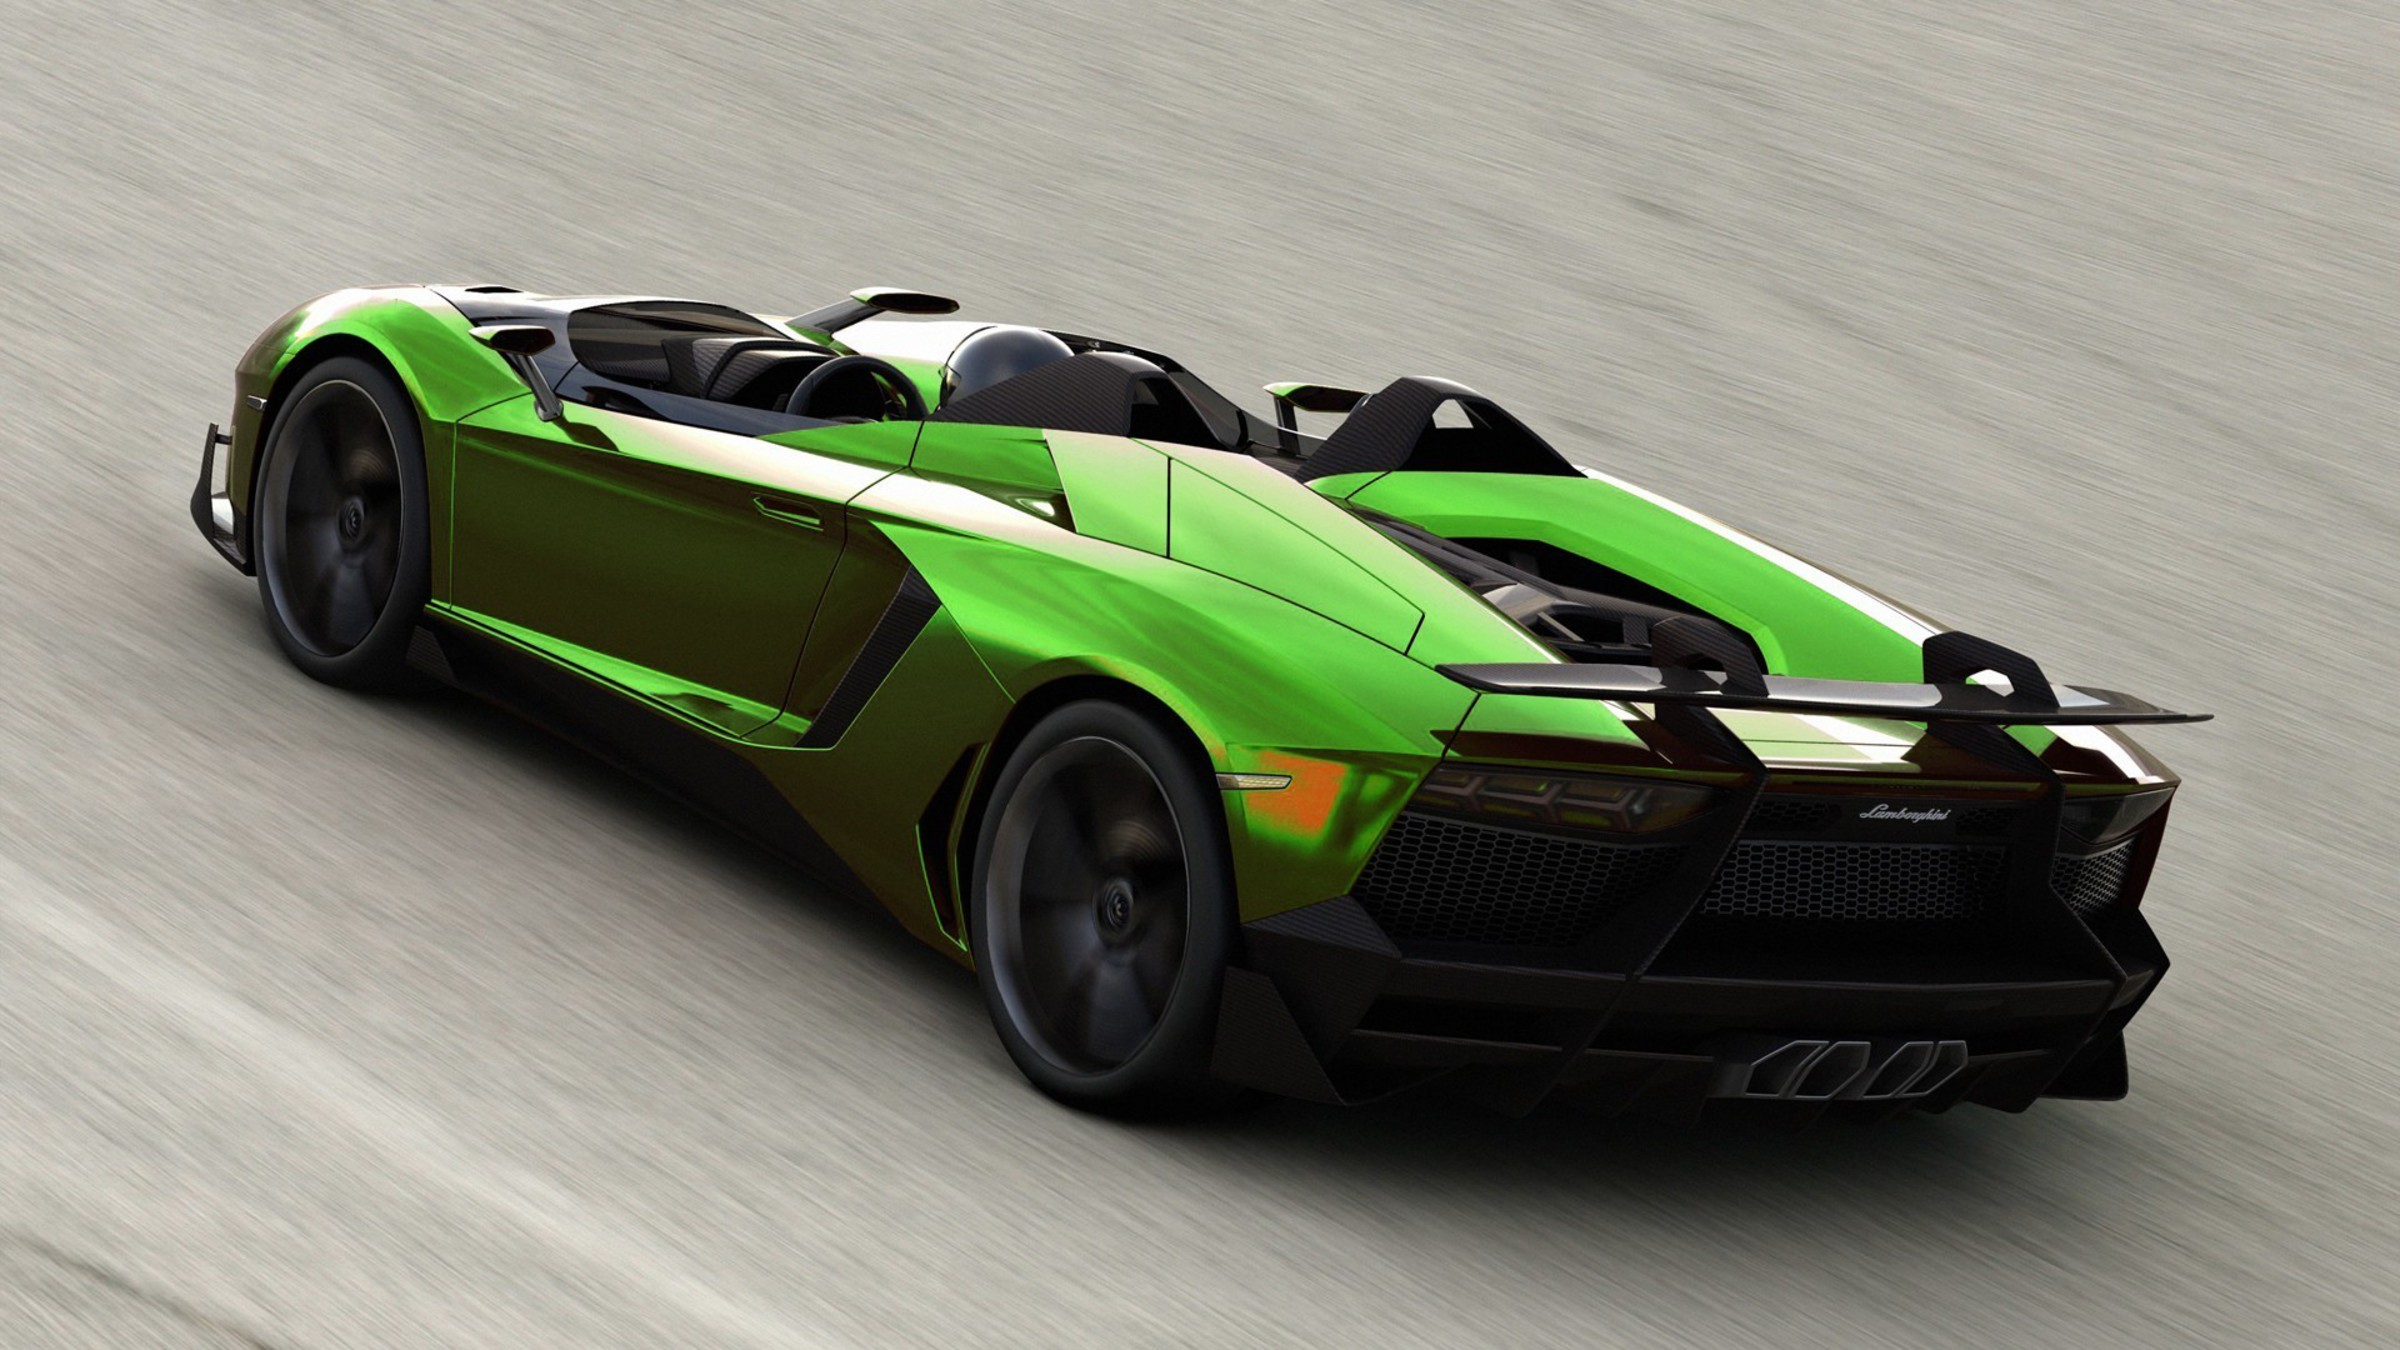 Green Cars Wallpaper Best Cars Wallpapers